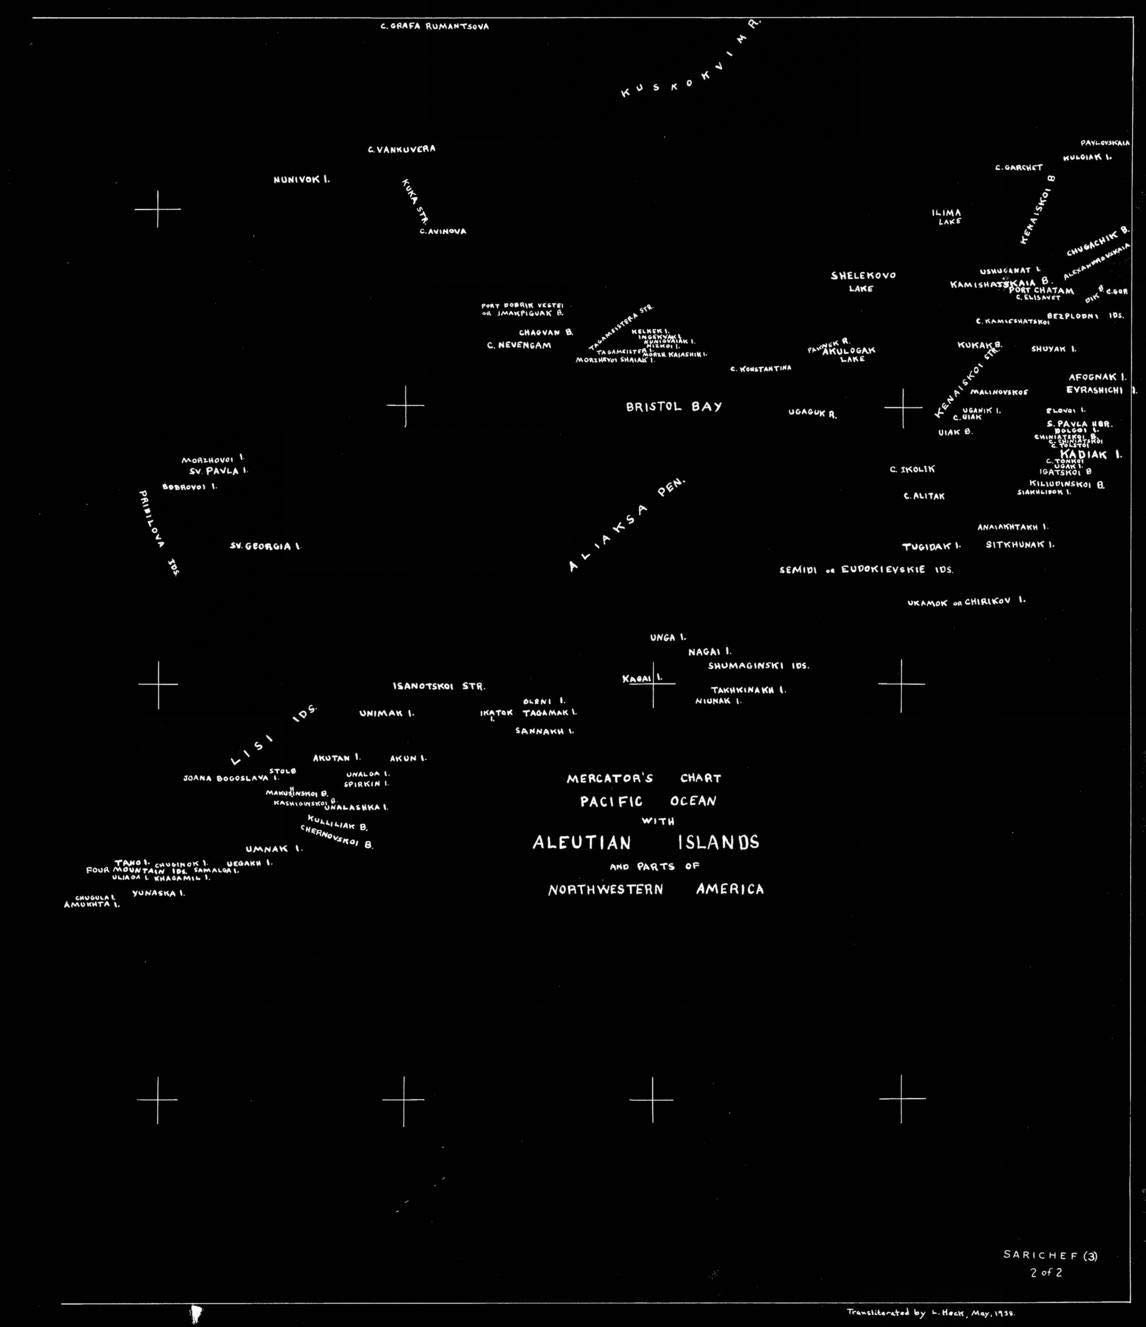 Vintography NOAA Blueprint Style 18 x 24 Nautical Chart SARICHEF 3 Sheet 2 of 2 - MERCATORS Chart Pacific Ocean with ALEUTIAN Islands and Parts of Northwestern America L. Heck 54a